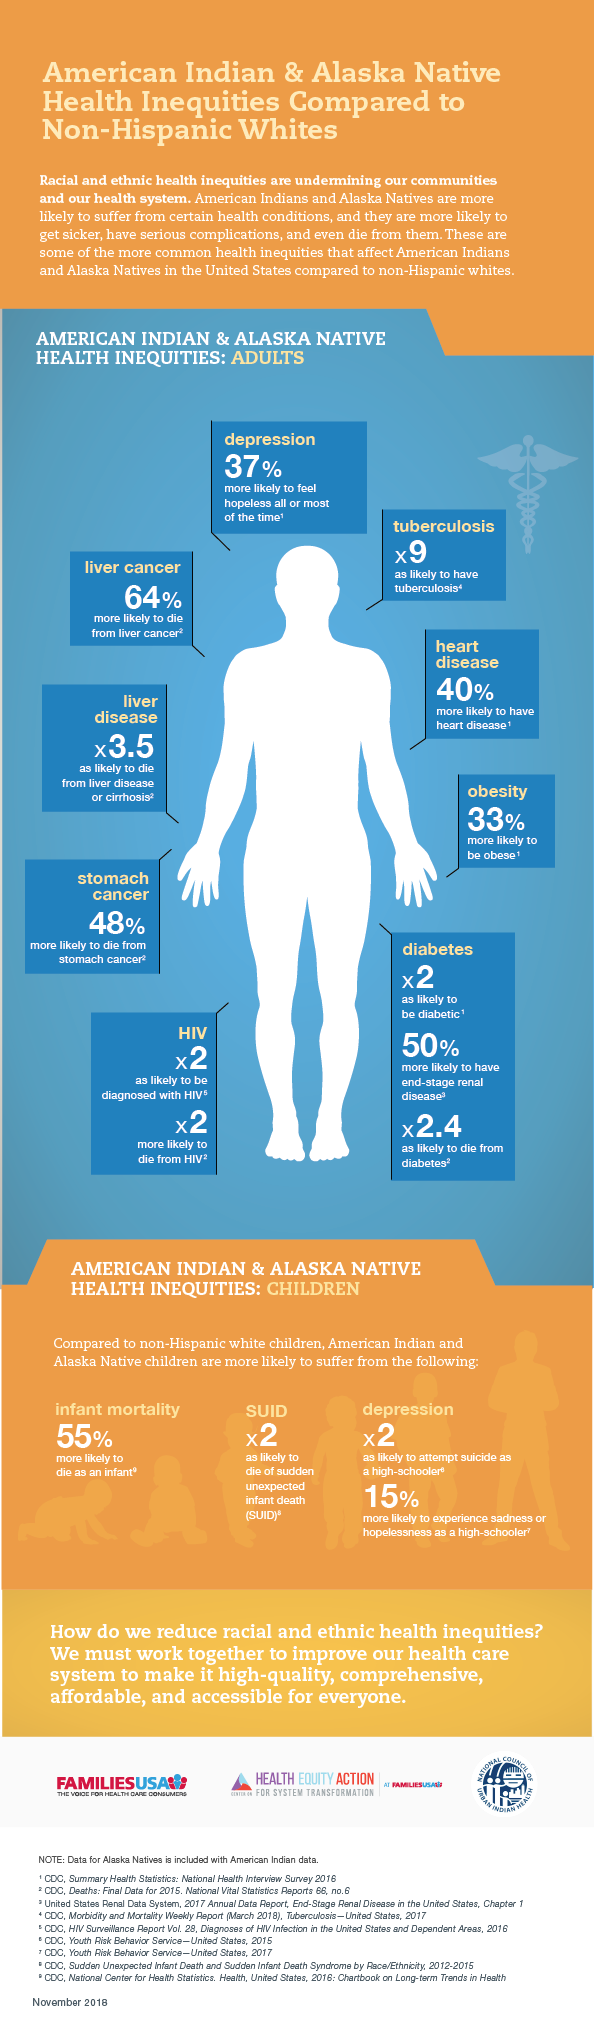 https://familiesusa.org/wp-content/uploads/2019/09/HSI-Health-disparities_american-indian-infographic.png